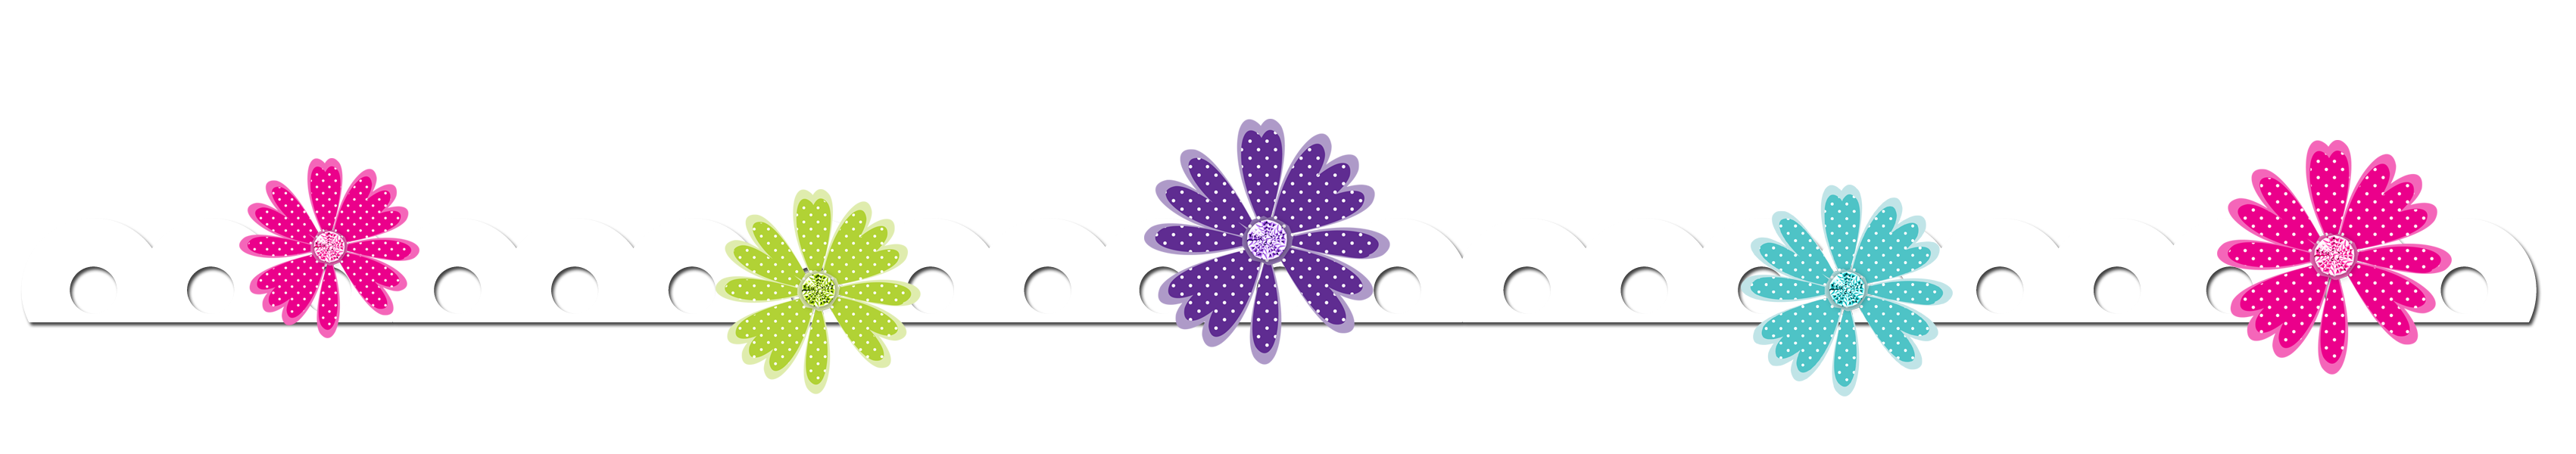 3402x600 Flower Border Flower Clip Art Border Pictures Reference